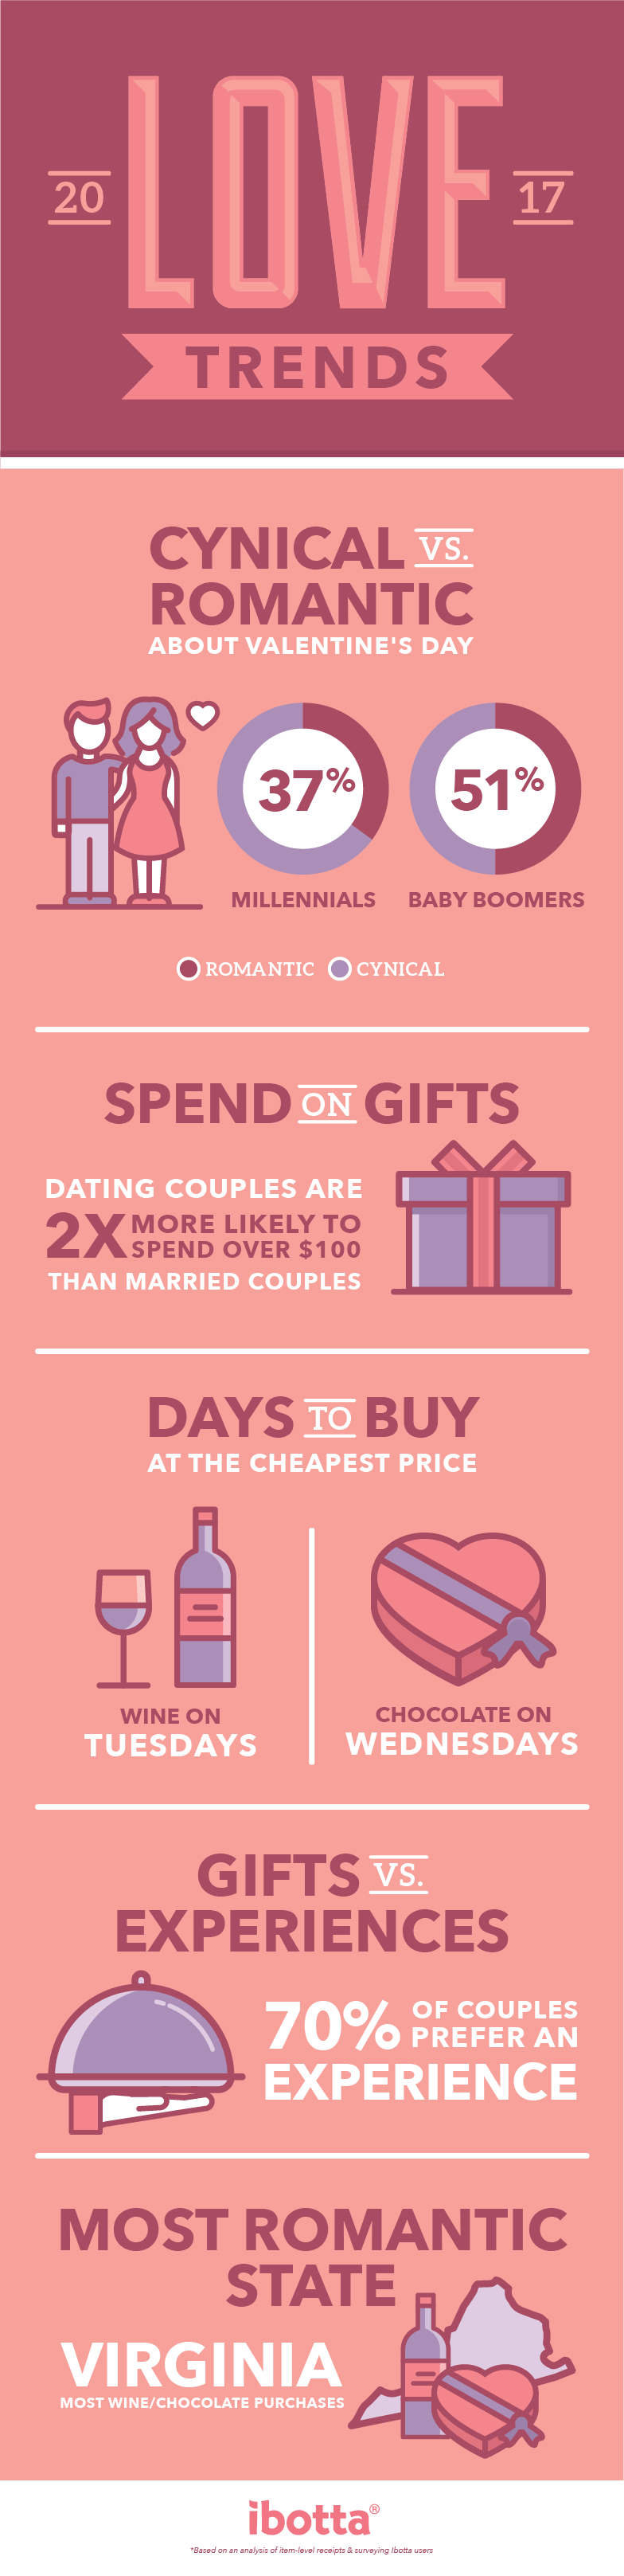 love-trends-infographic-01-1